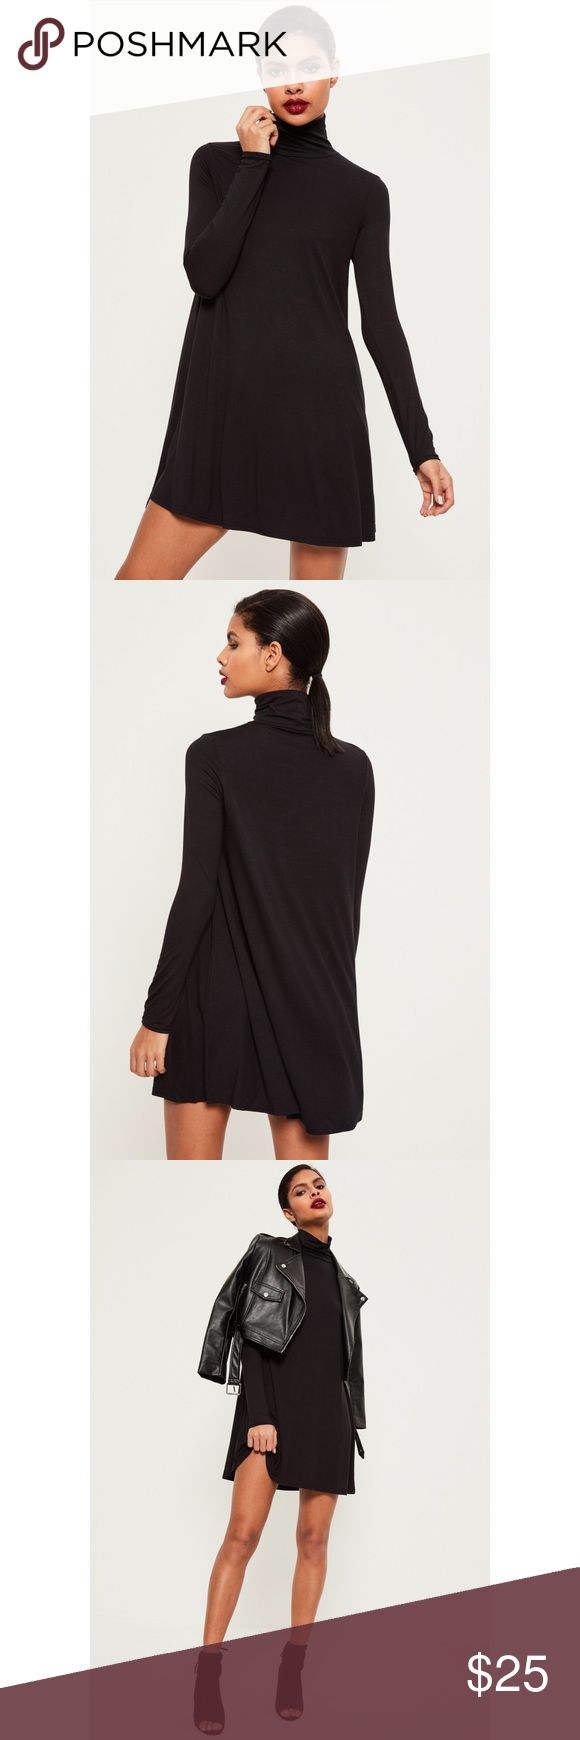 Roll neck long sleeve jersey swing dress ▪️Black swing dress ▪️Luxe long sleeves ▪️Roll neck ▪️95% viscose 5% elastane  ▪️US size 4 ▪️Please refer to Missguided size chart: https://www.missguidedus.com/size_guide/ 📷: additional photos available upon request 💵: reasonable offers will be considered Missguided Dresses